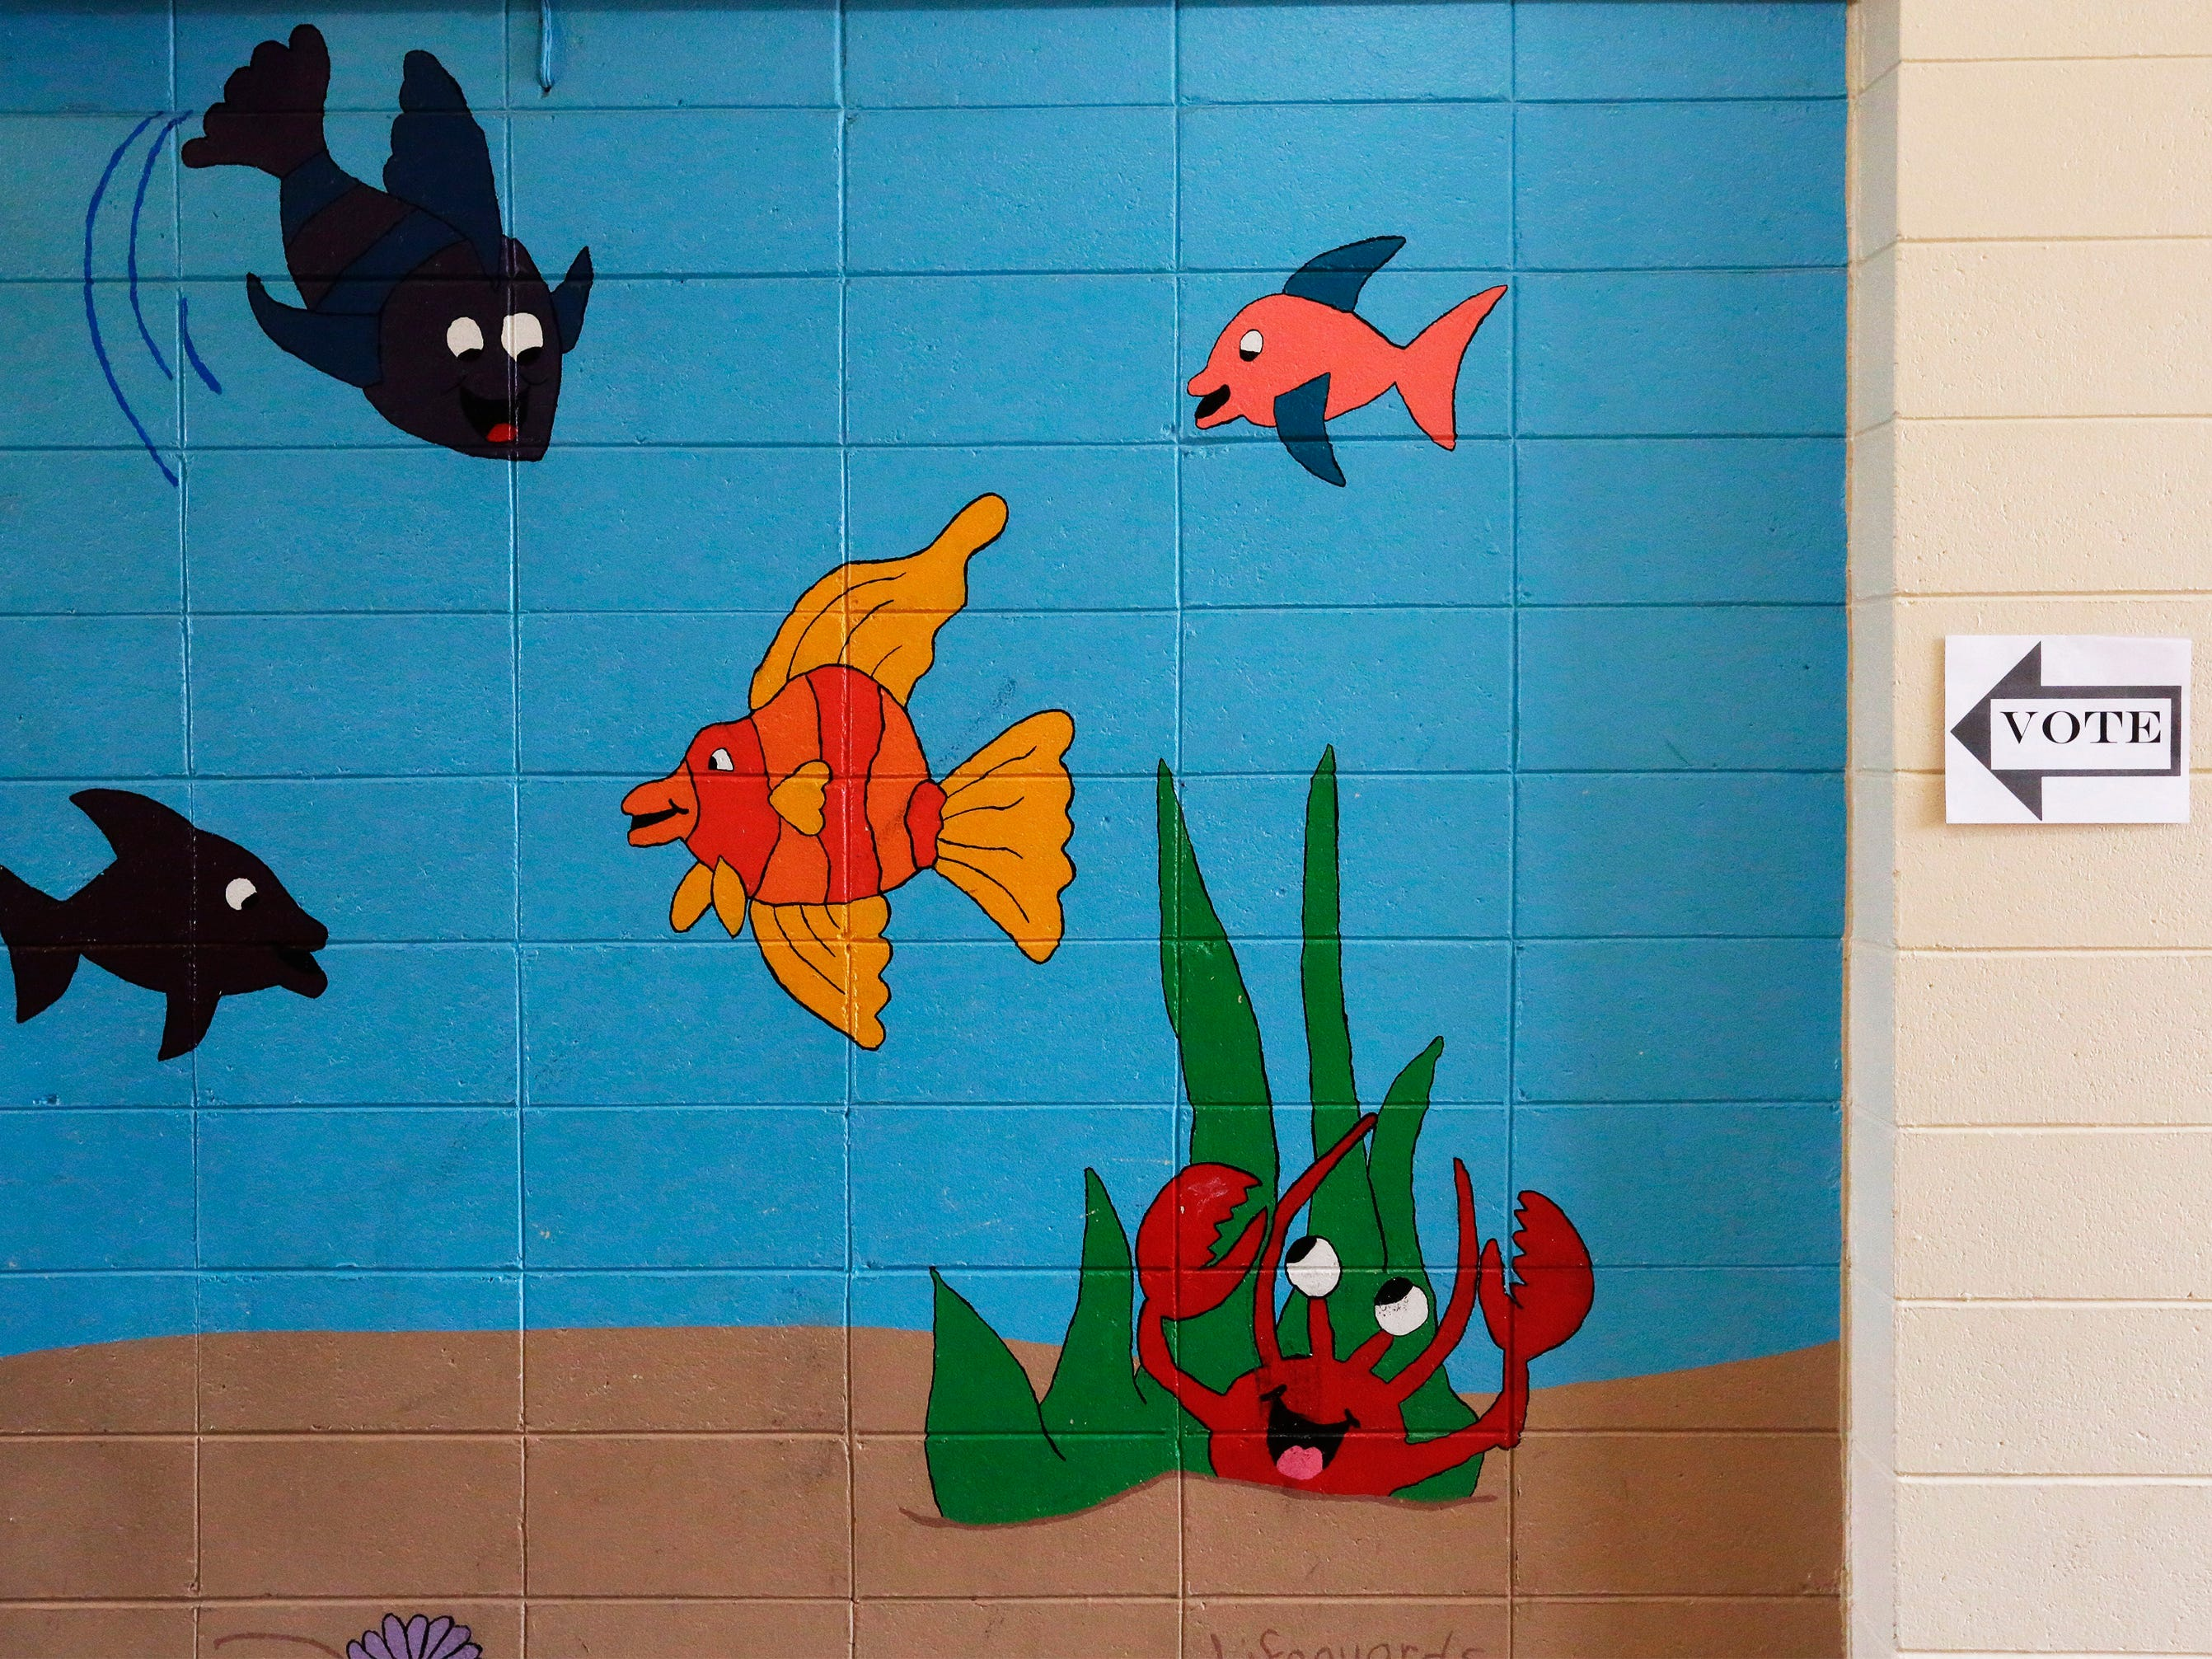 The fish painted on the wall seem to know where to vote at the Quarryview Center, Tuesday, April 2, 2019, in Sheboygan, Wis.